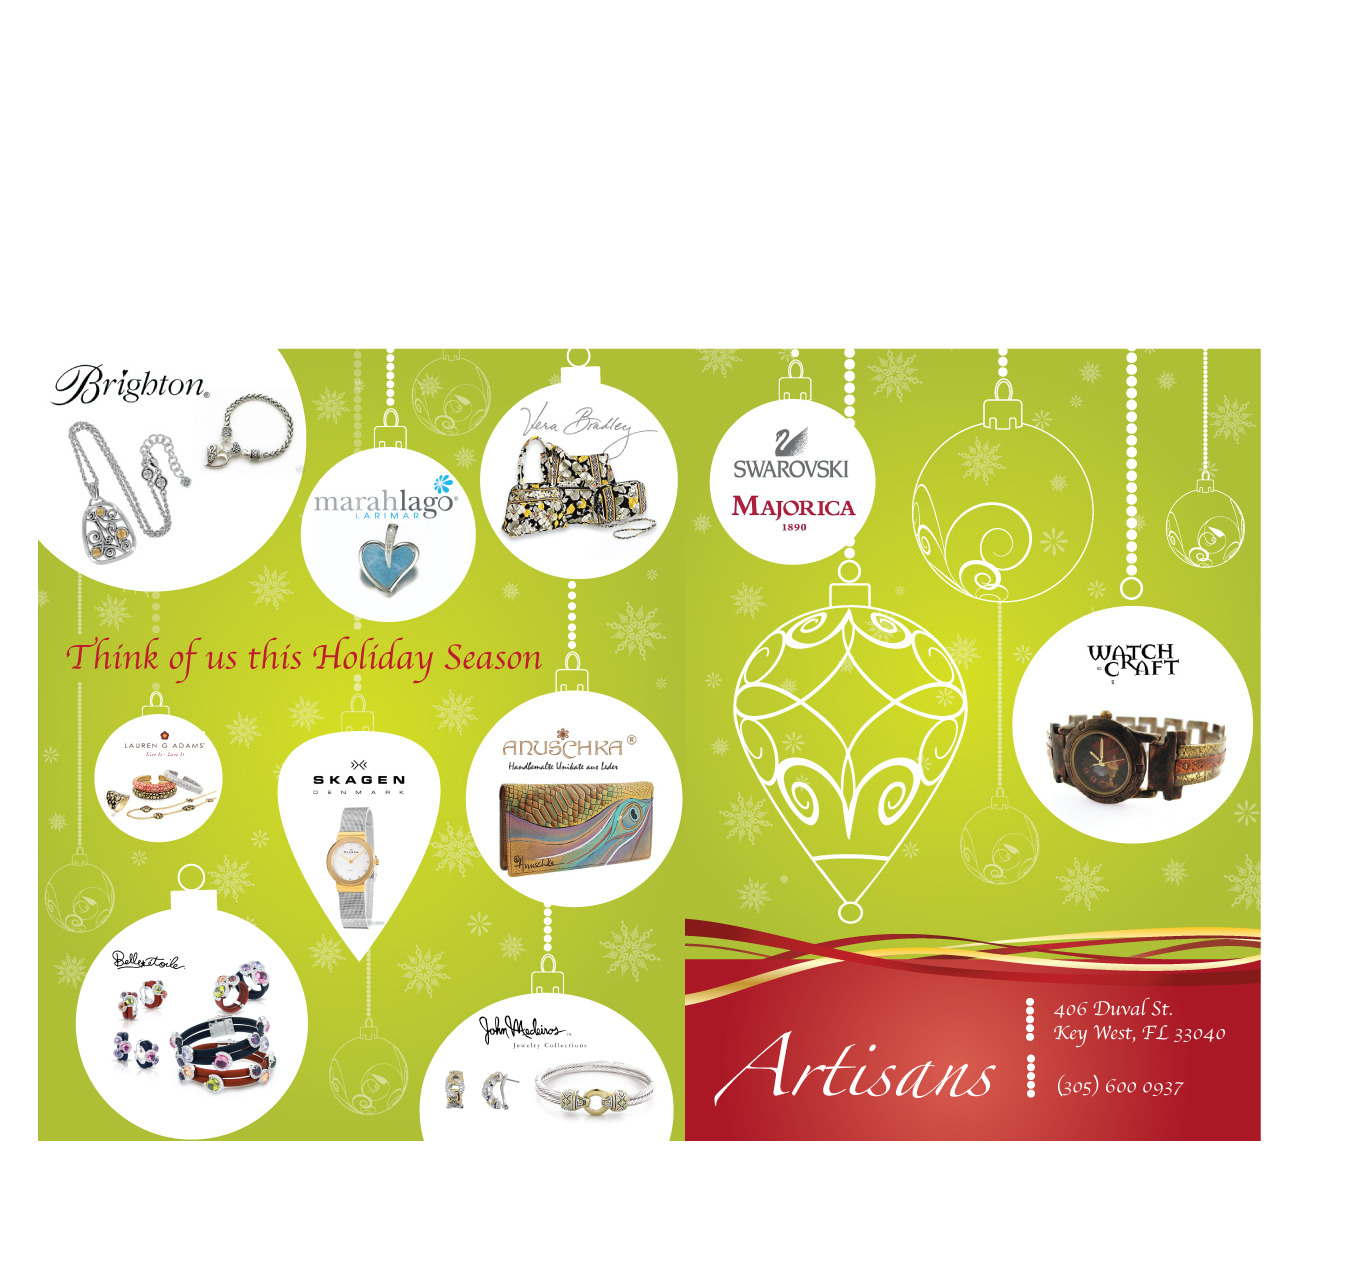 Christmas Leaflet Ideas.Retail Flyer Mash Up Christmas 19 Flyer Designs For A